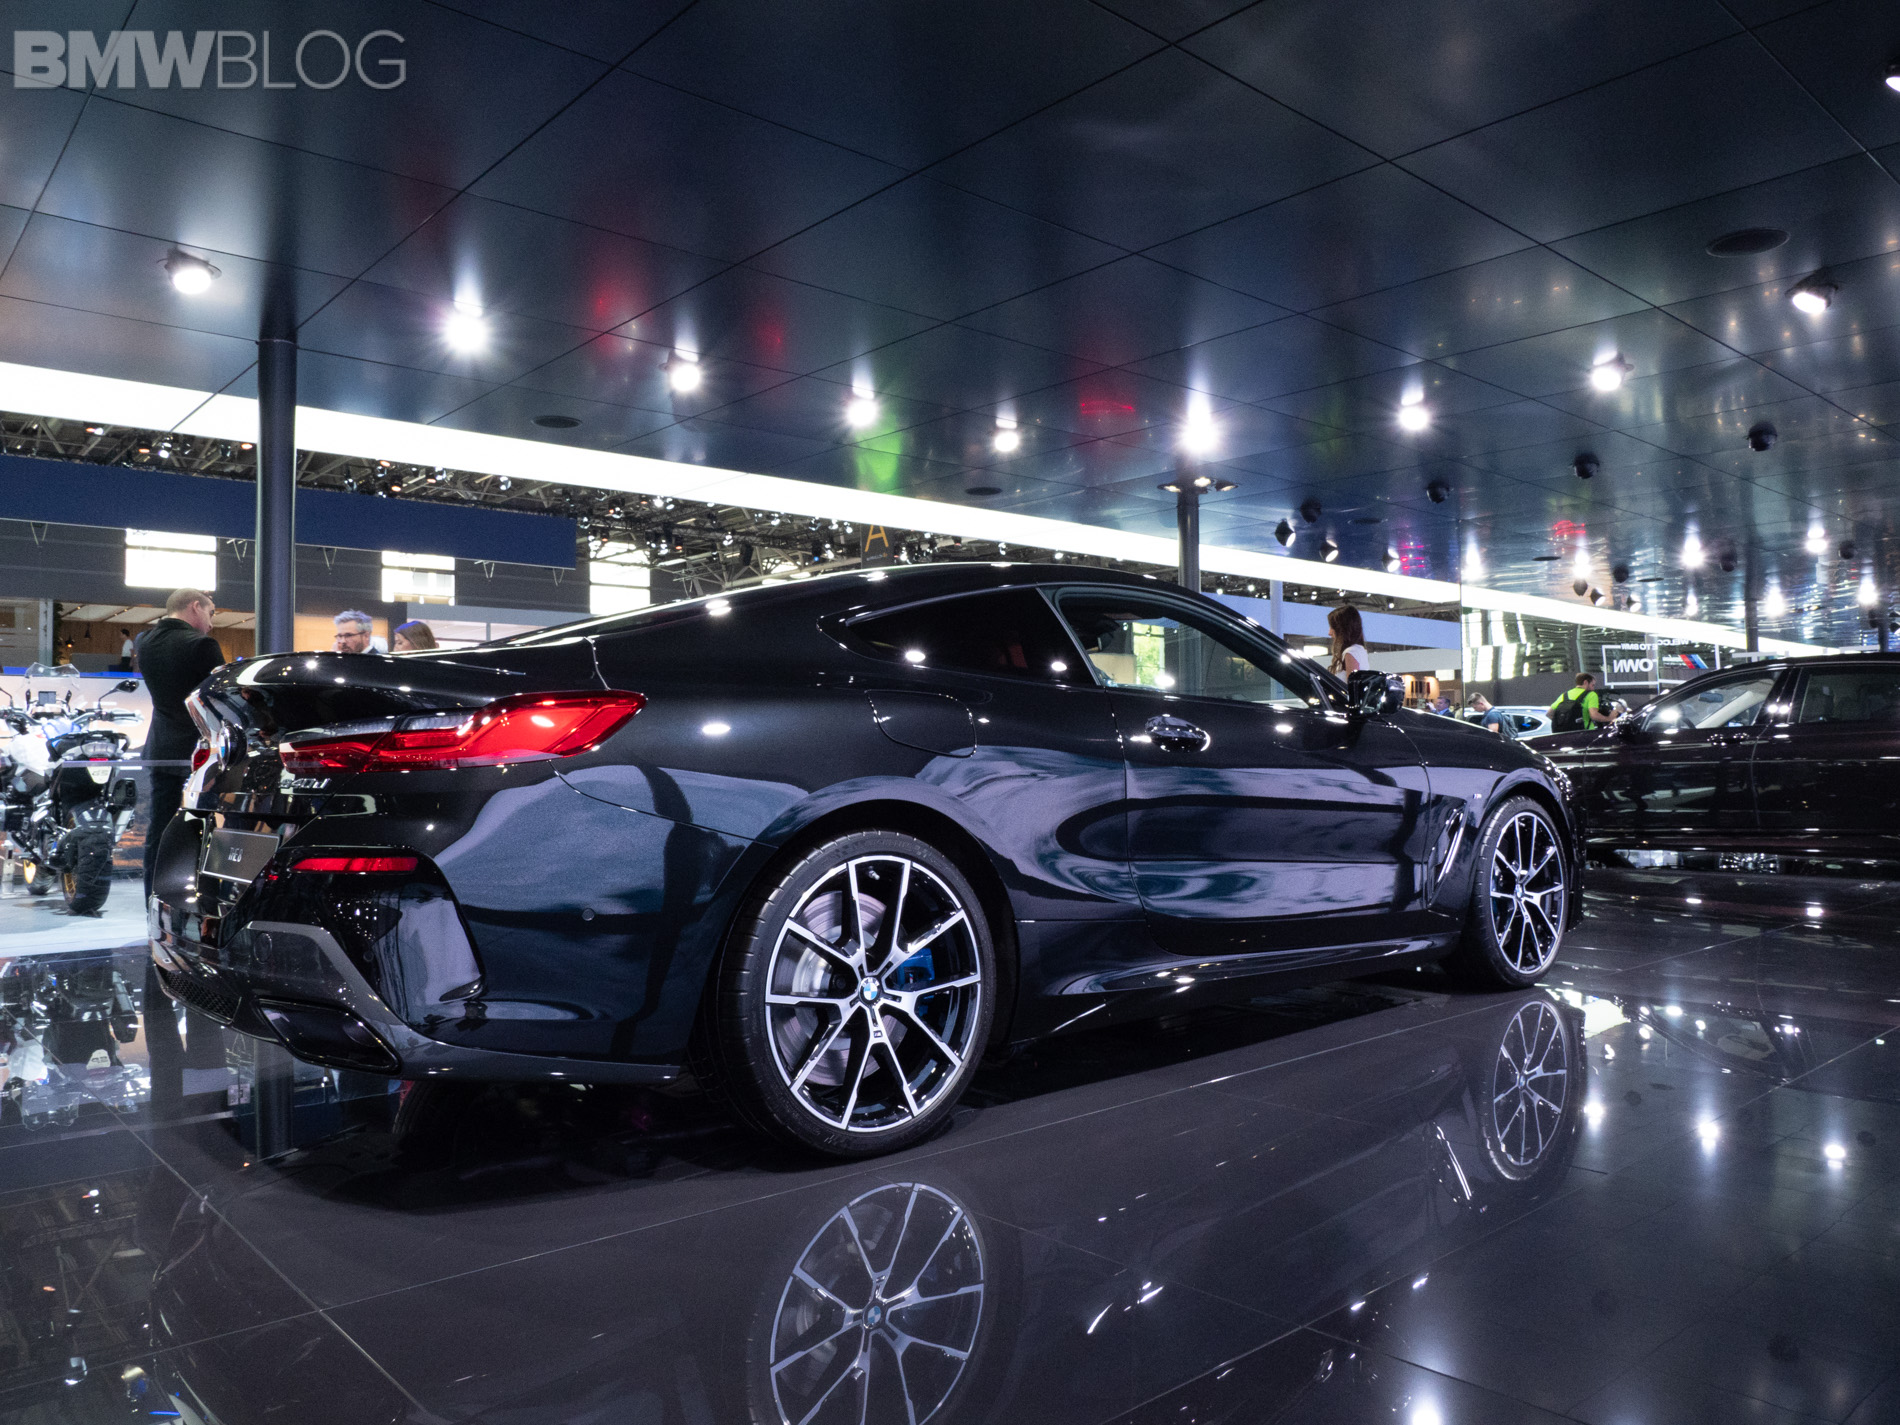 paris 2018 bmw 840d coupe looks stunning in sapphire black. Black Bedroom Furniture Sets. Home Design Ideas